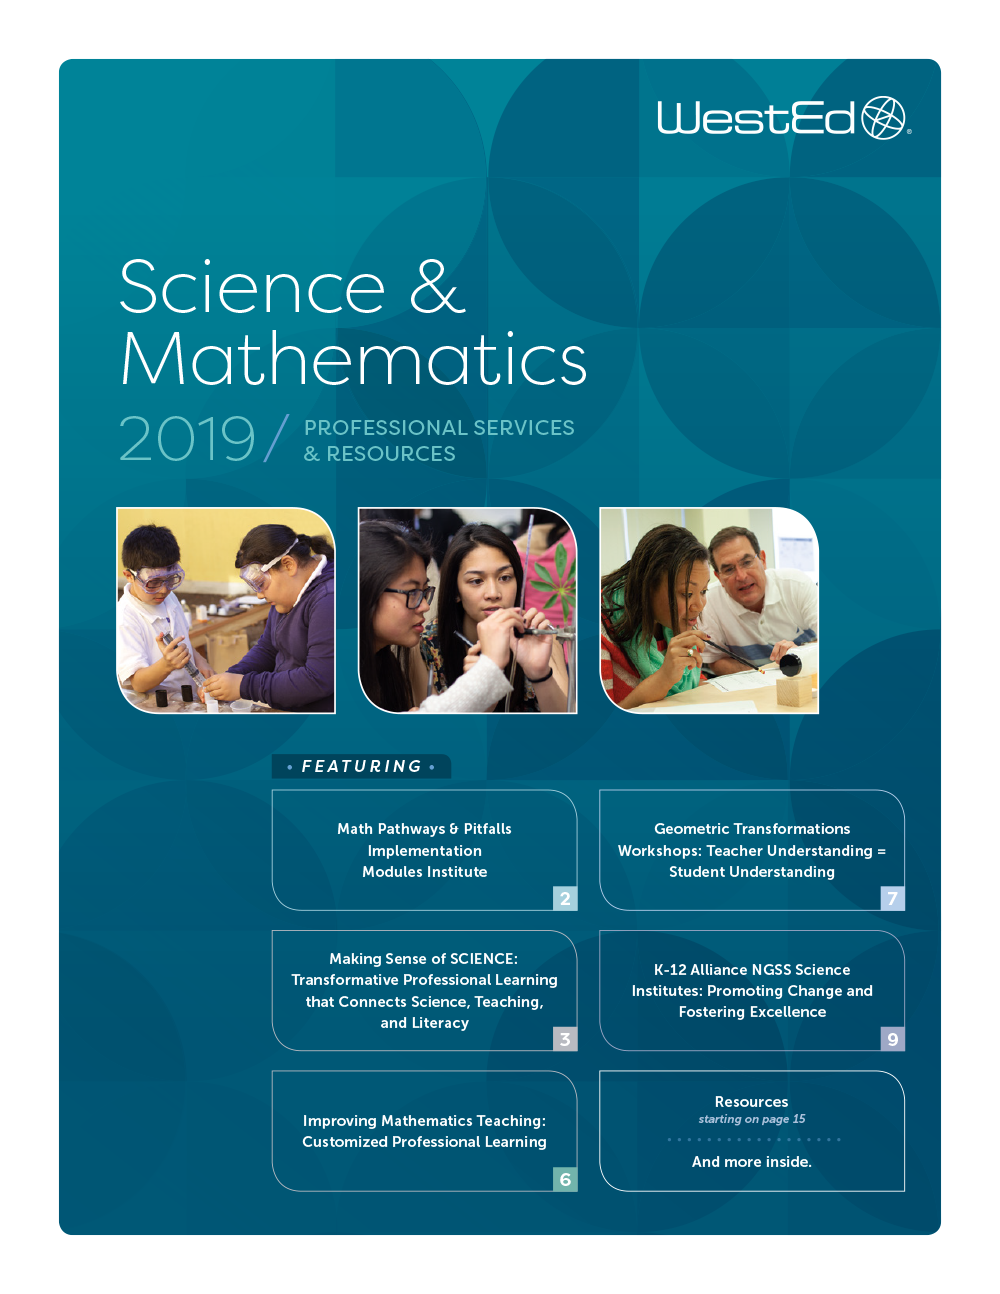 2019 WestEd Catalog for Science and Mathematics Professional Services and Resources